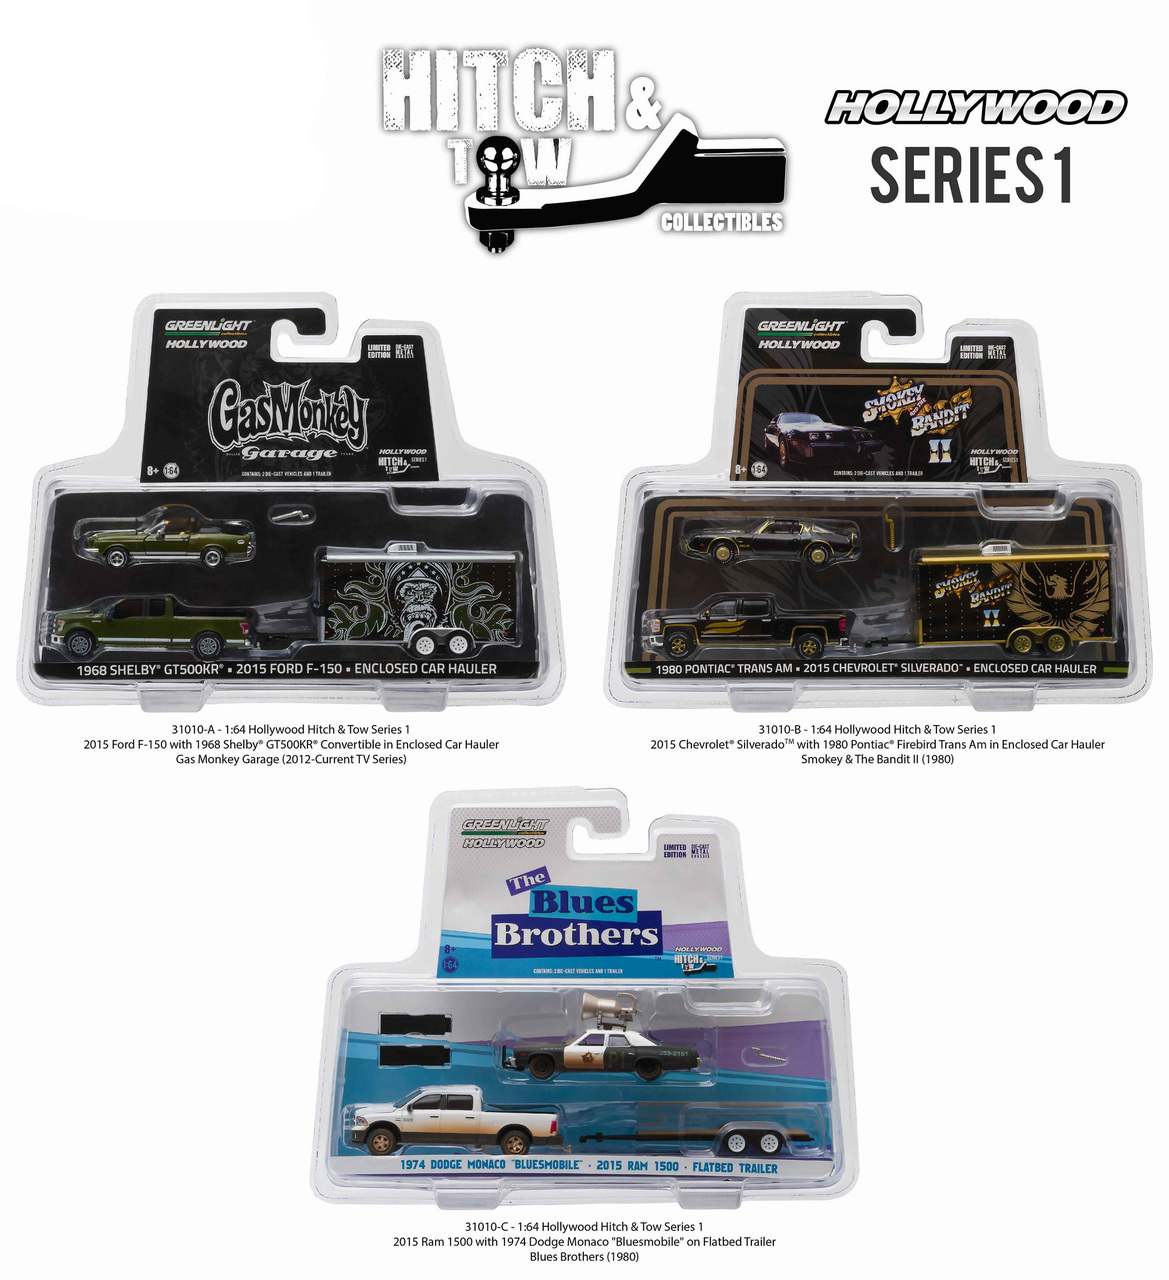 Hollywood Hitch & Tow Series 1 Set of 3 pieces 1/64 Diecast Model Cars by Greenlight